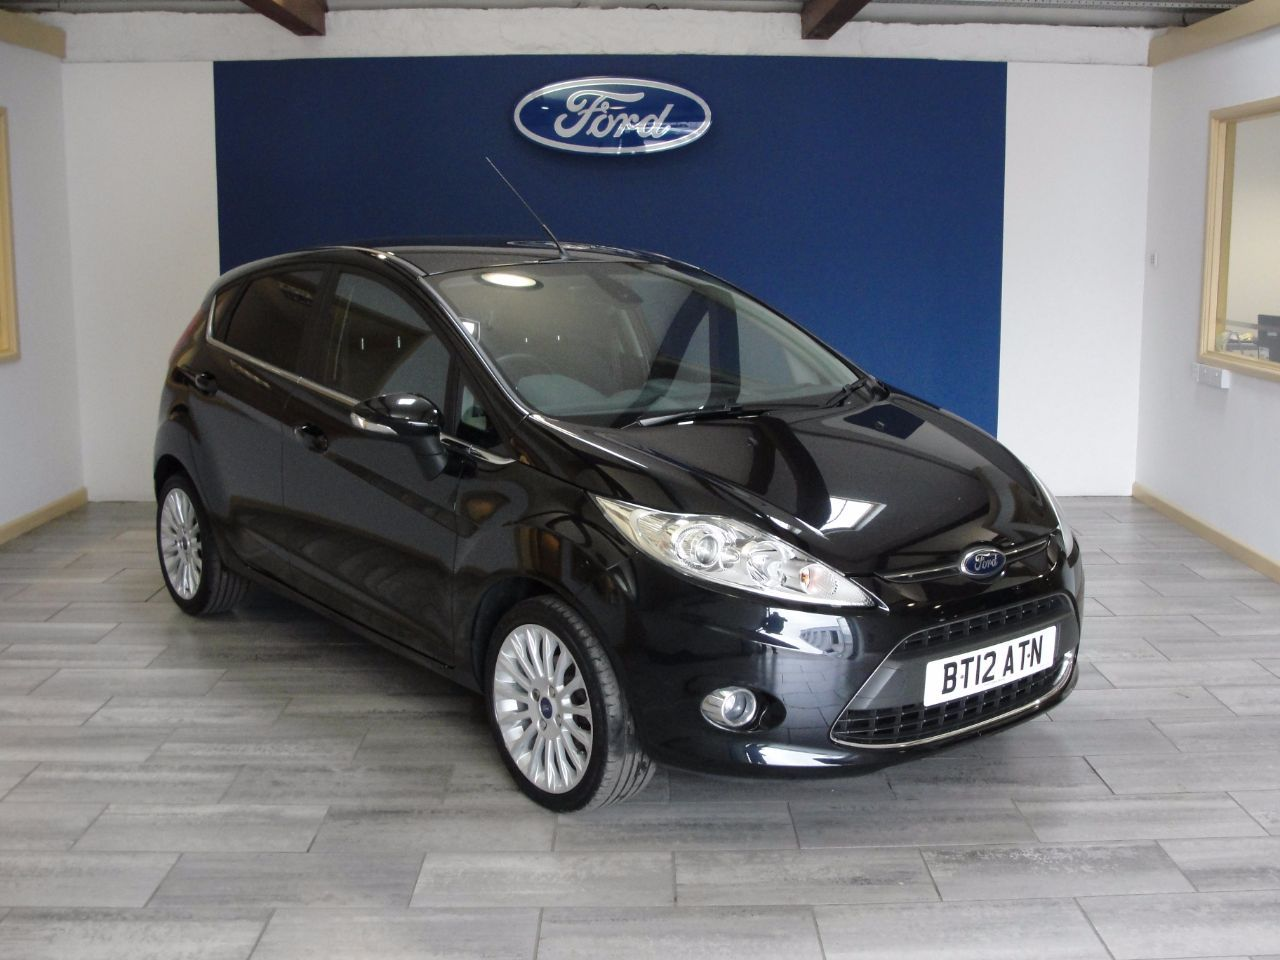 Second Hand Ford Fiesta 1 4 Titanium 5dr For Sale In Newton Abbot Devon Ford Used Ford Ford Fiesta